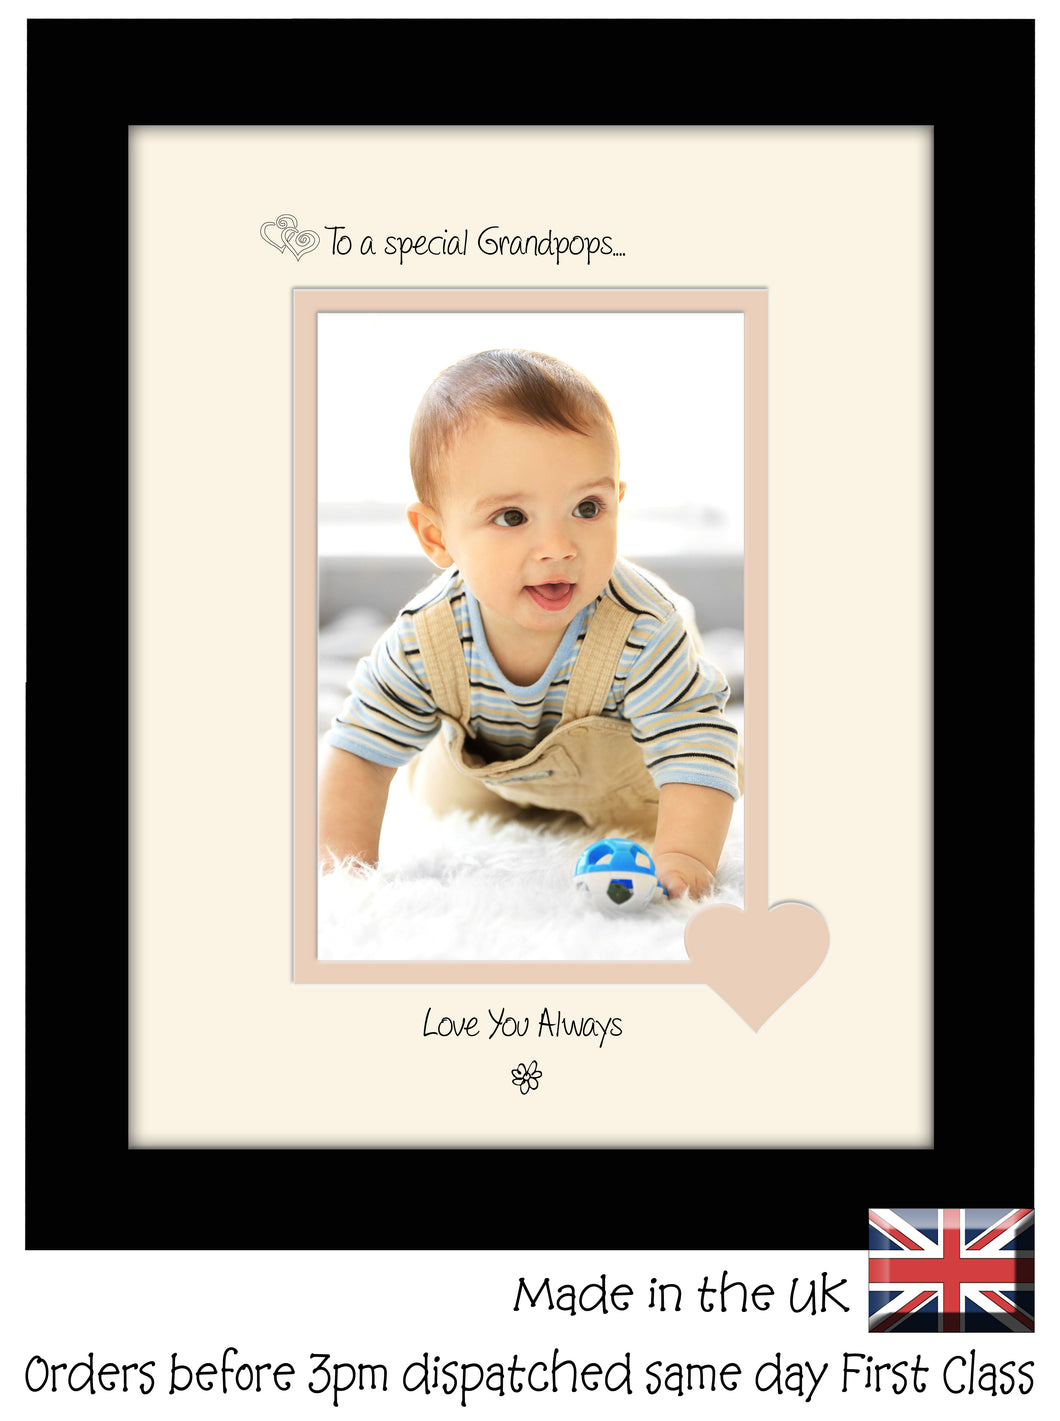 Grandpops Photo Frame - To a Special Grandpops ... Love you Always Portrait photo frame 6